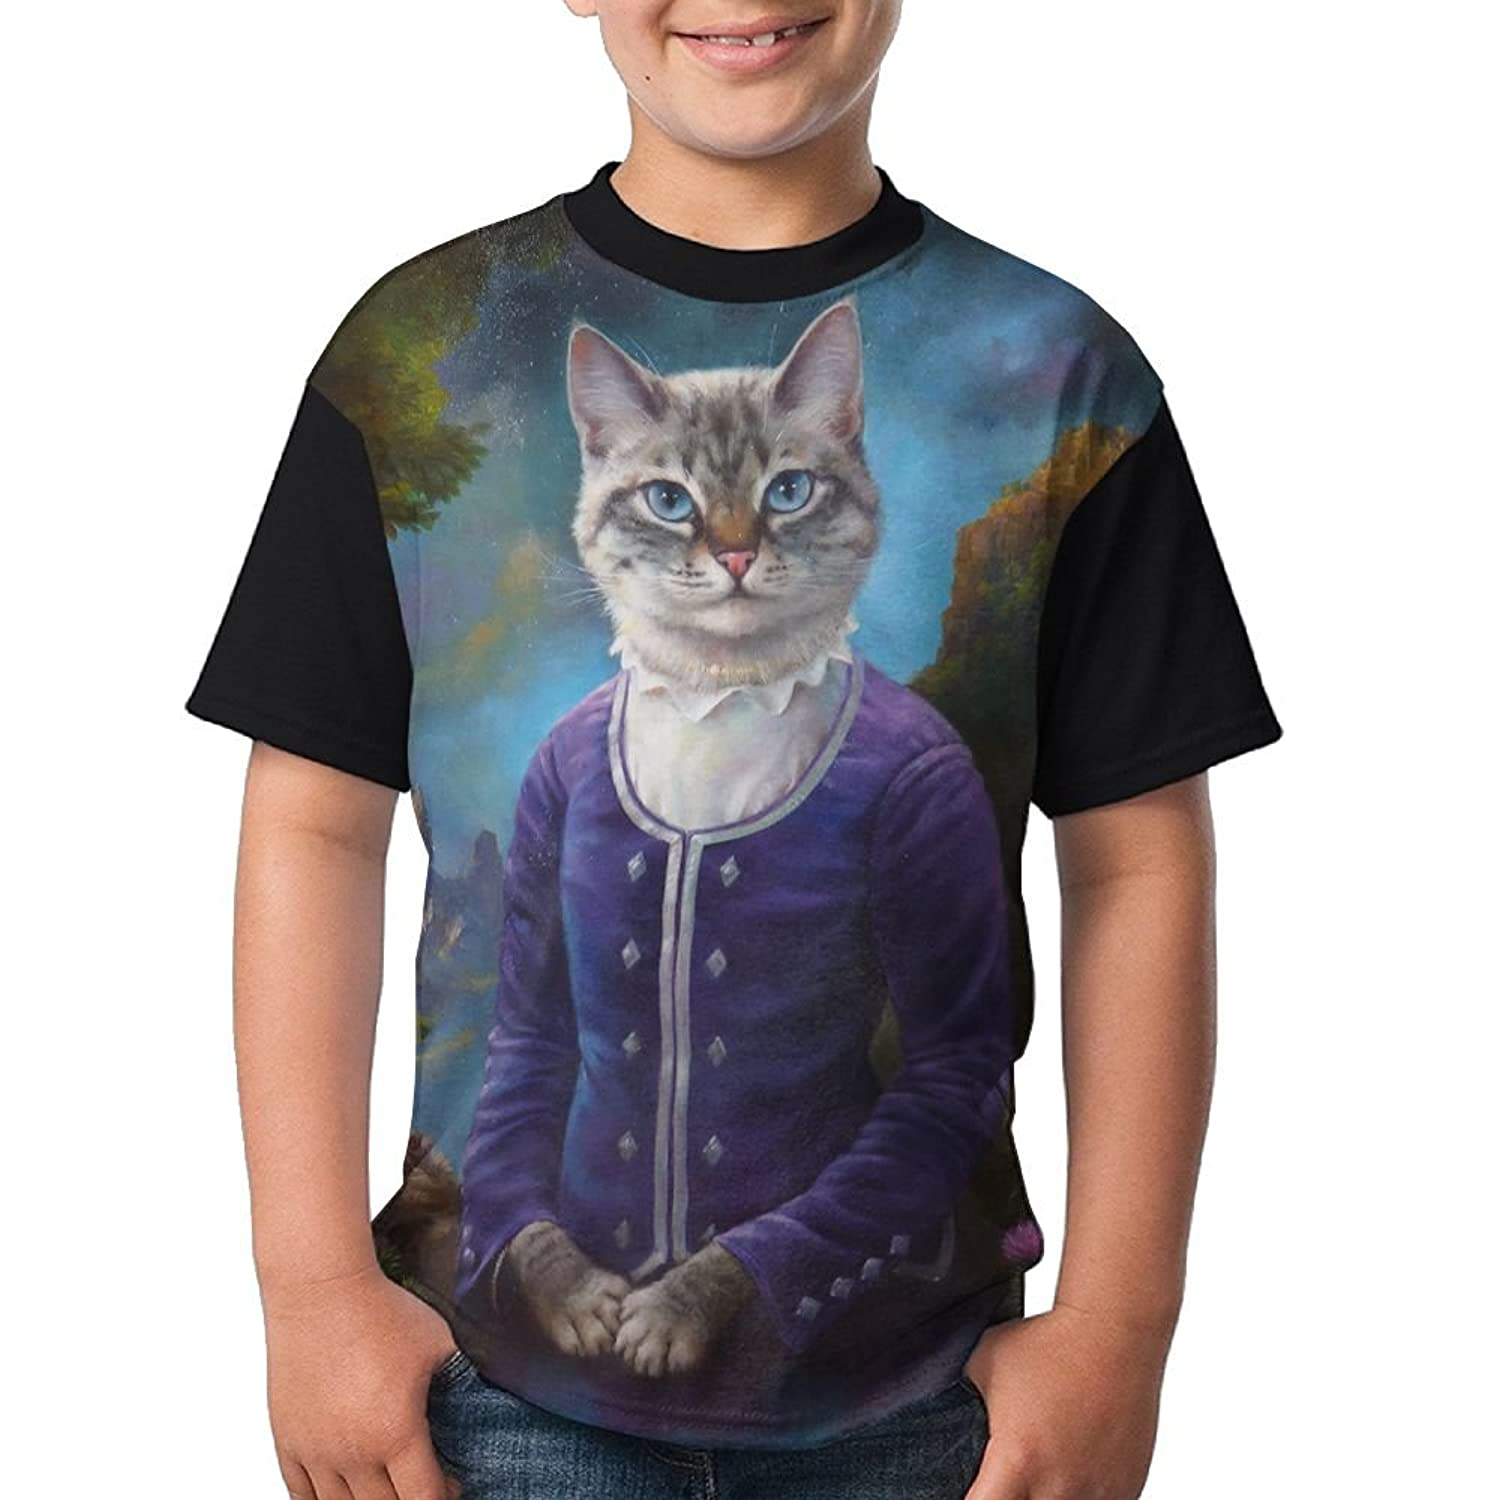 Zapage Youth Boys Lady Cat Short Sleeve T Shirt Fashion Design 3d